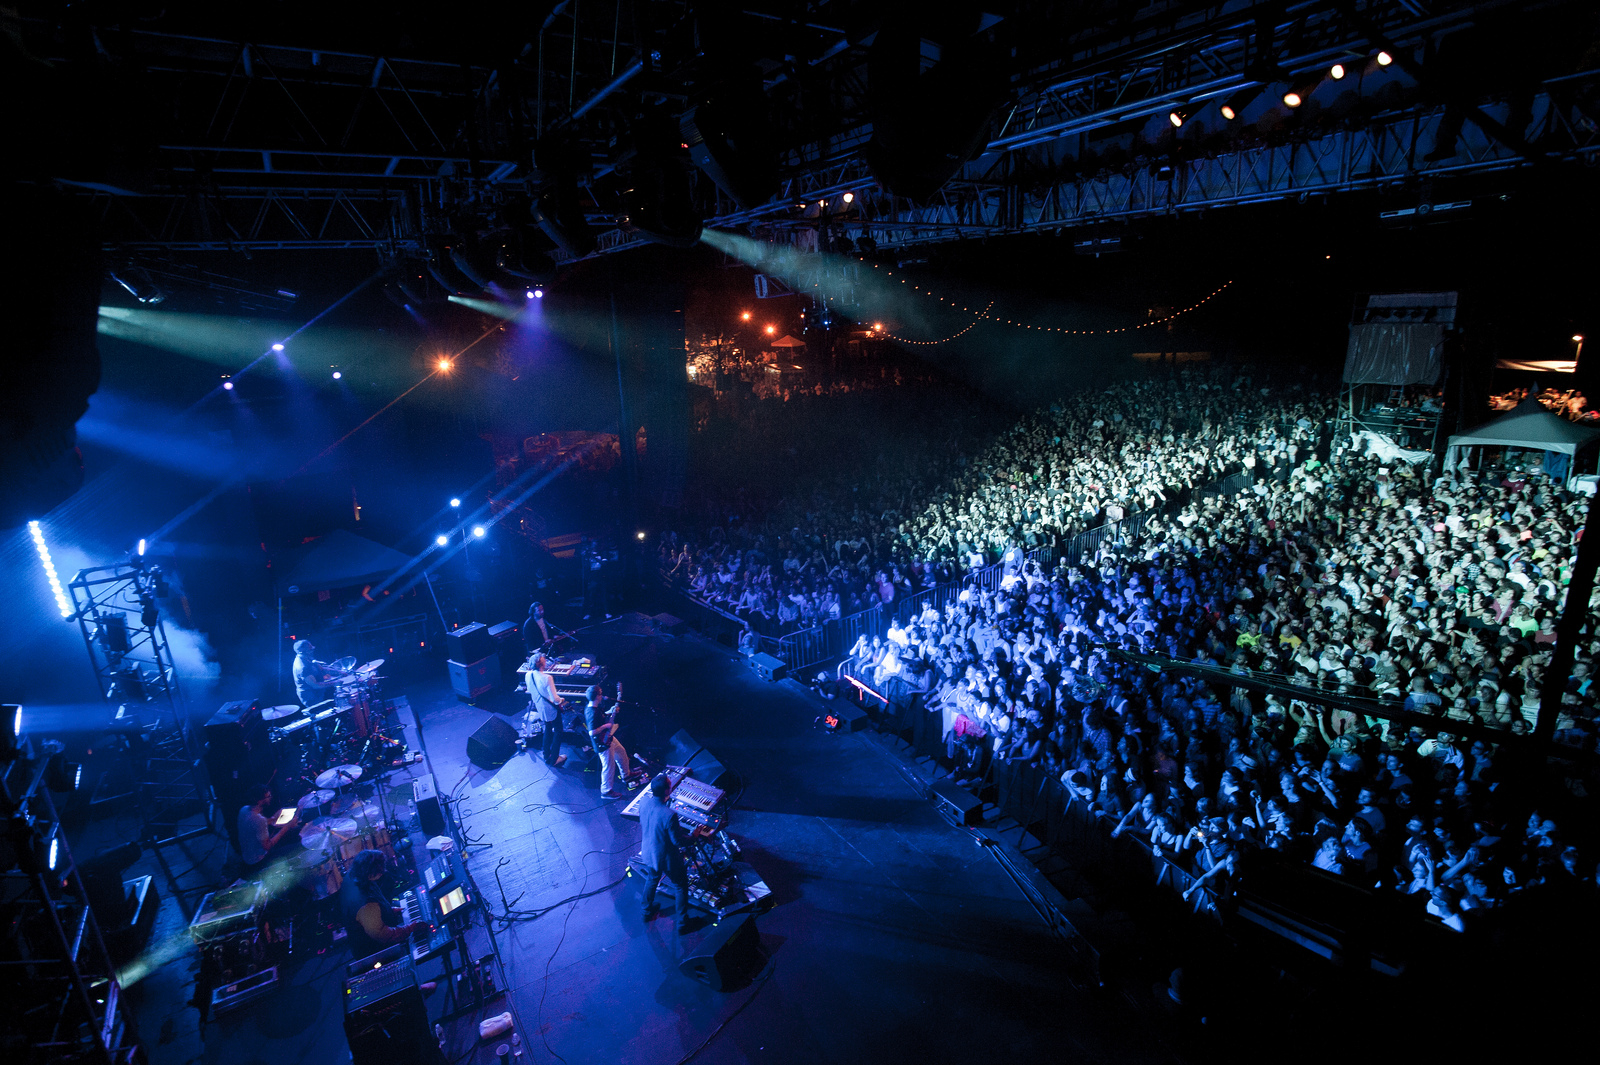 A nice shot of Hot Chip's stage setup and the maximum capacity crowd at Celebrate Brooklyn.